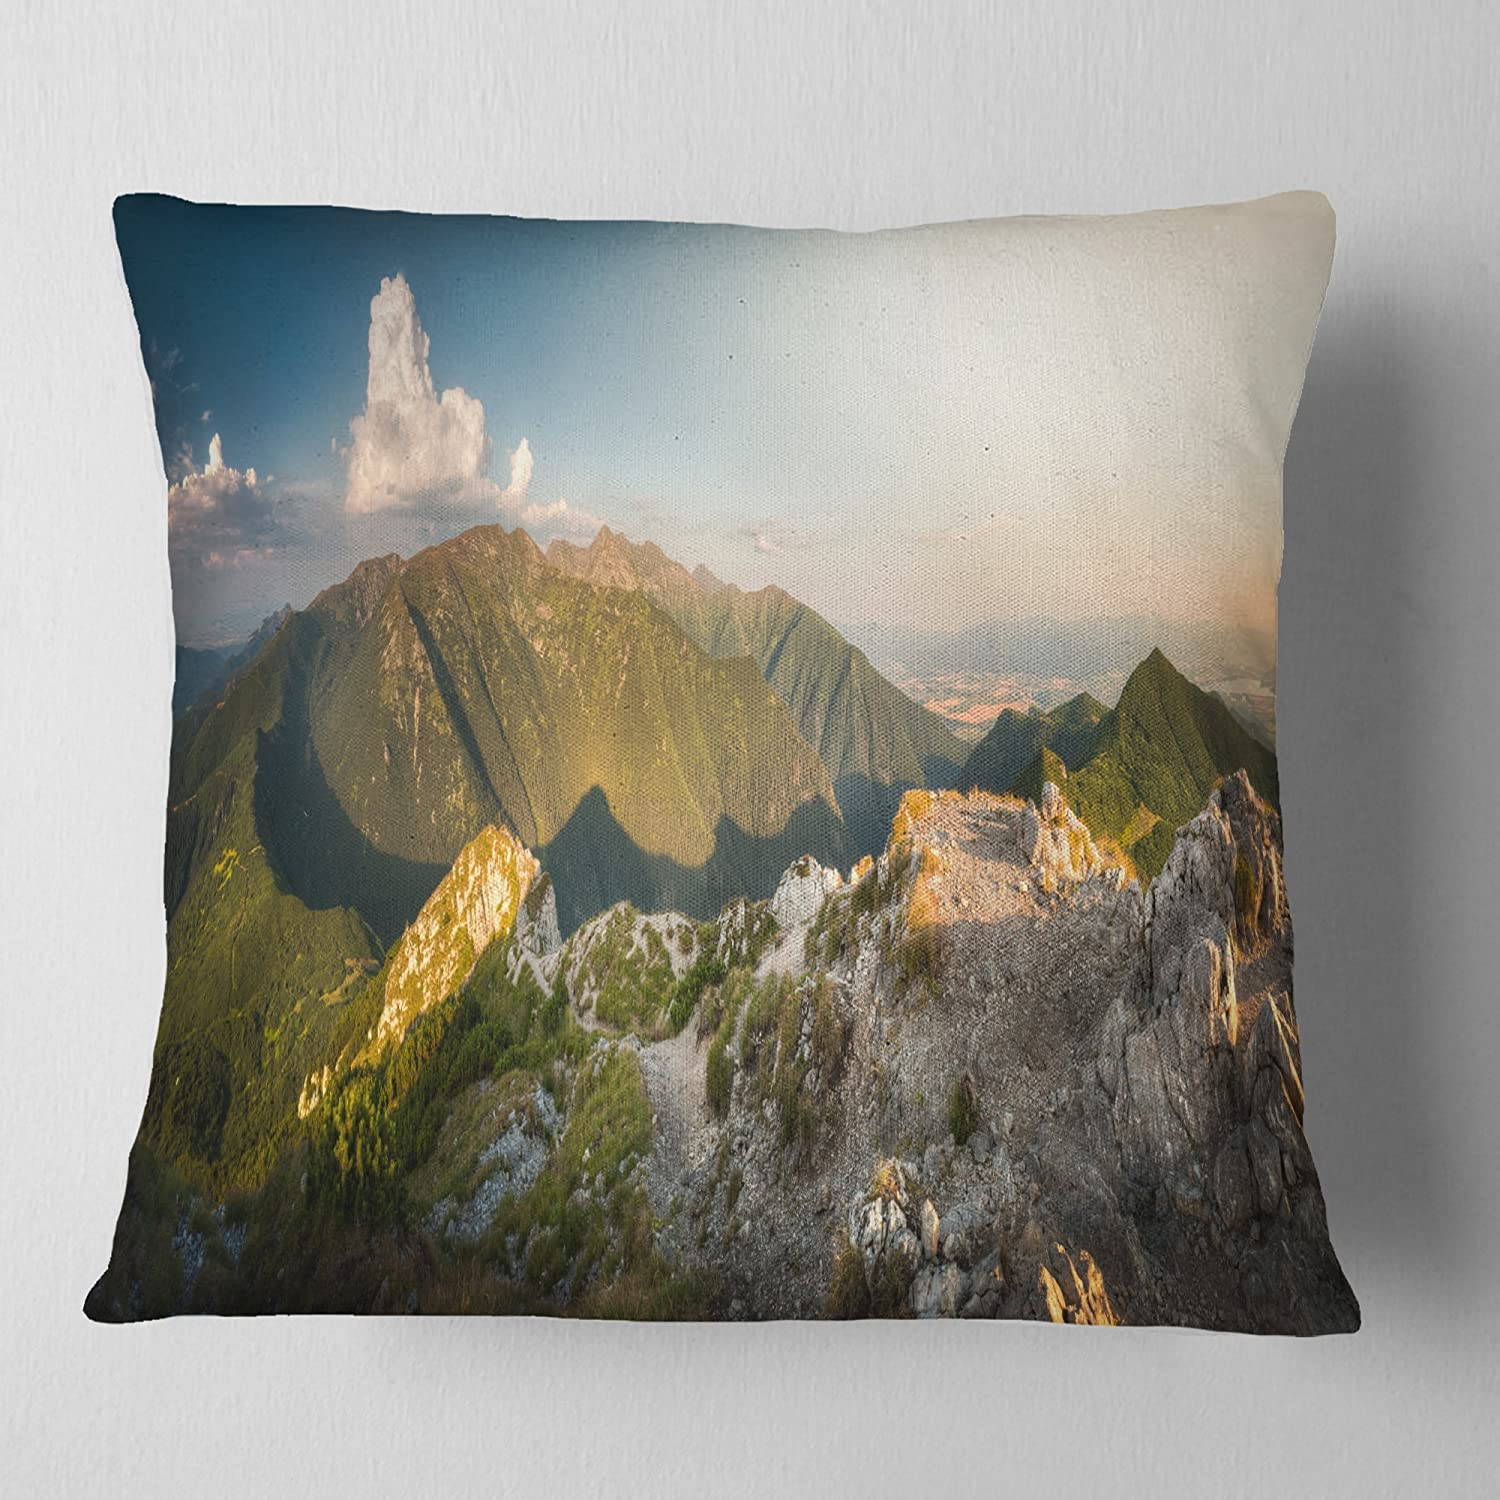 Designart CU11093-26-26 Rocky Green Mountains Panorama' Landscape Printed Cushion Cover for Living Room, Sofa Throw Pillow 26 in. x 26 in. in